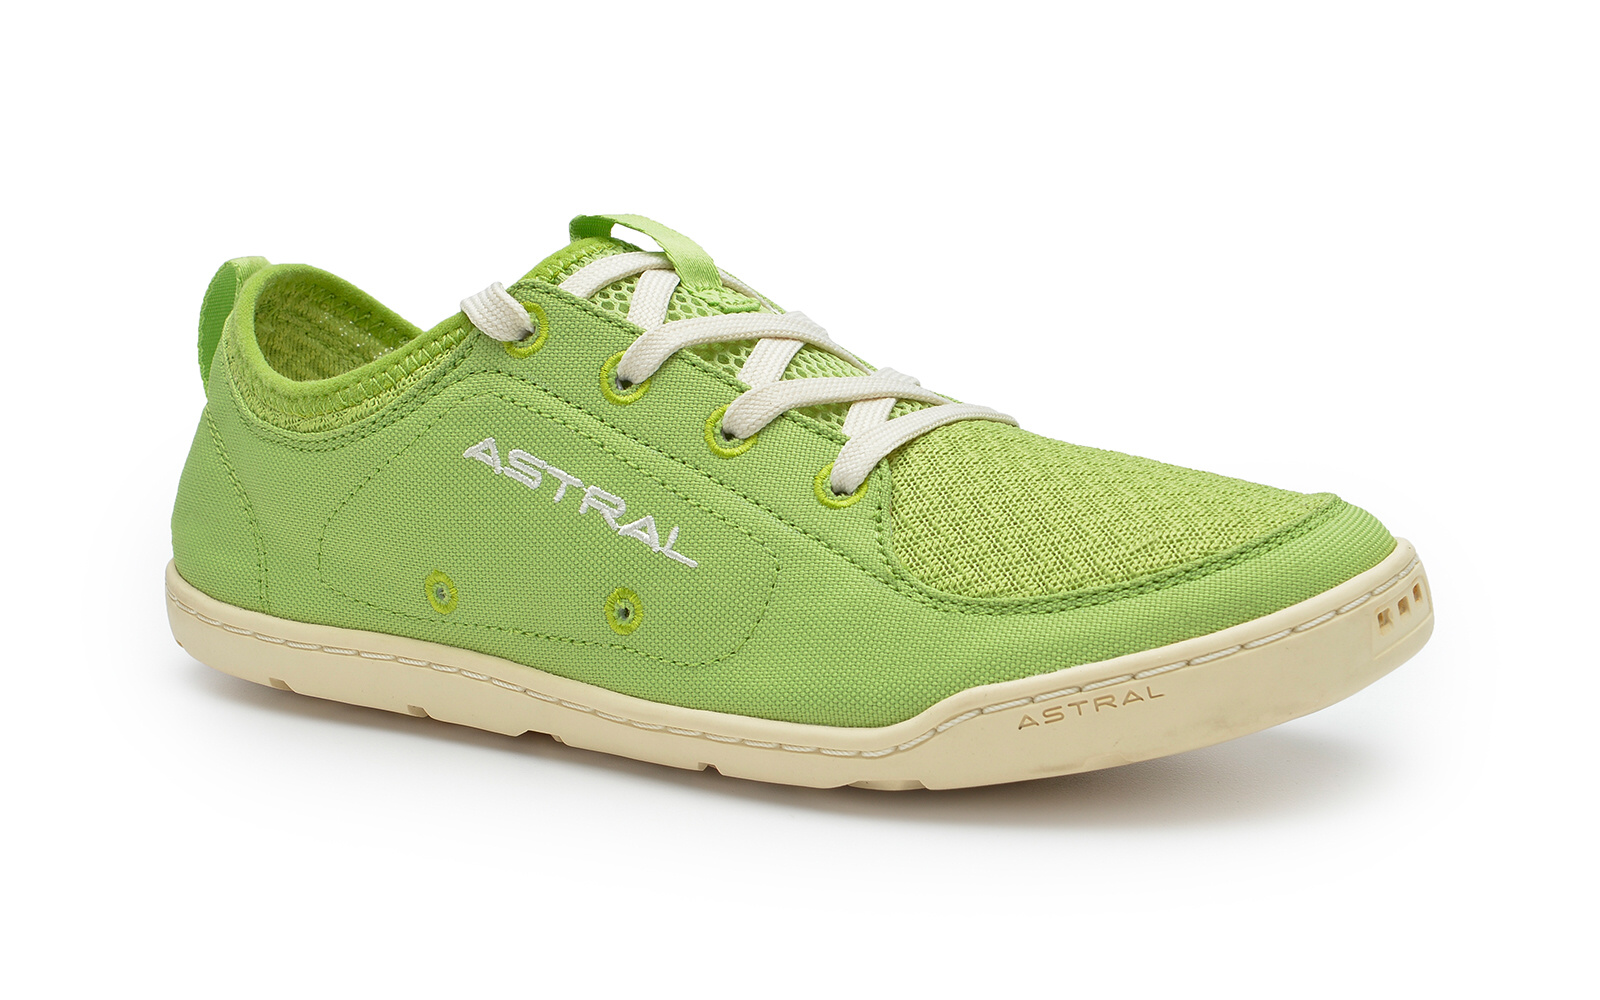 Astral_Loyak_Ws_SproutGreen_34.jpg